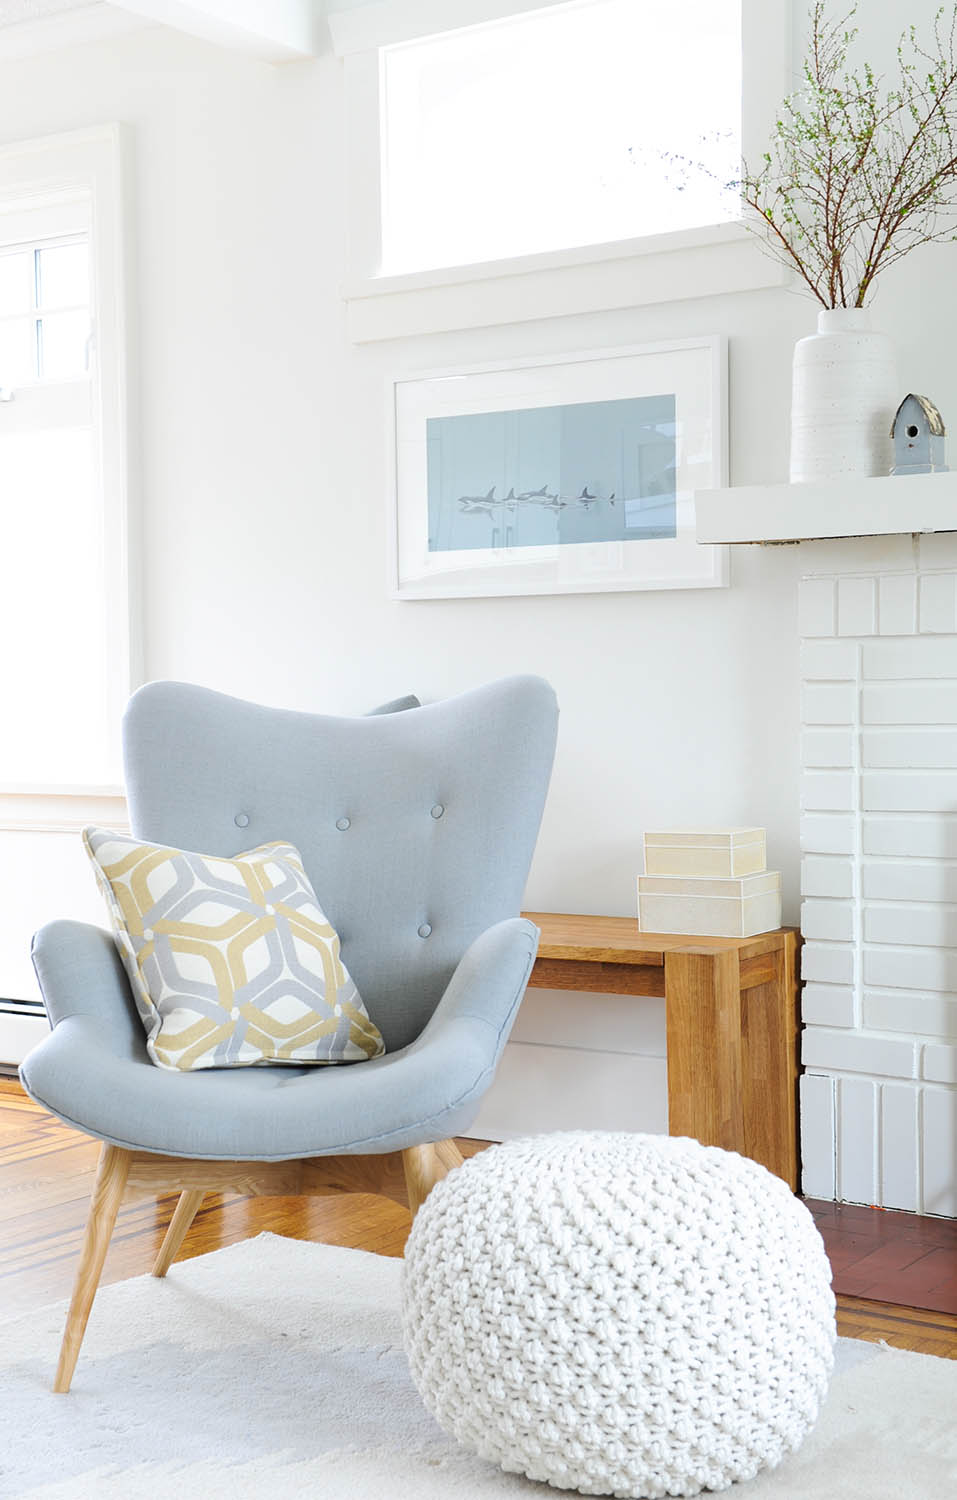 Vancouver interior design simply home decorating scandinavian inspired home 07